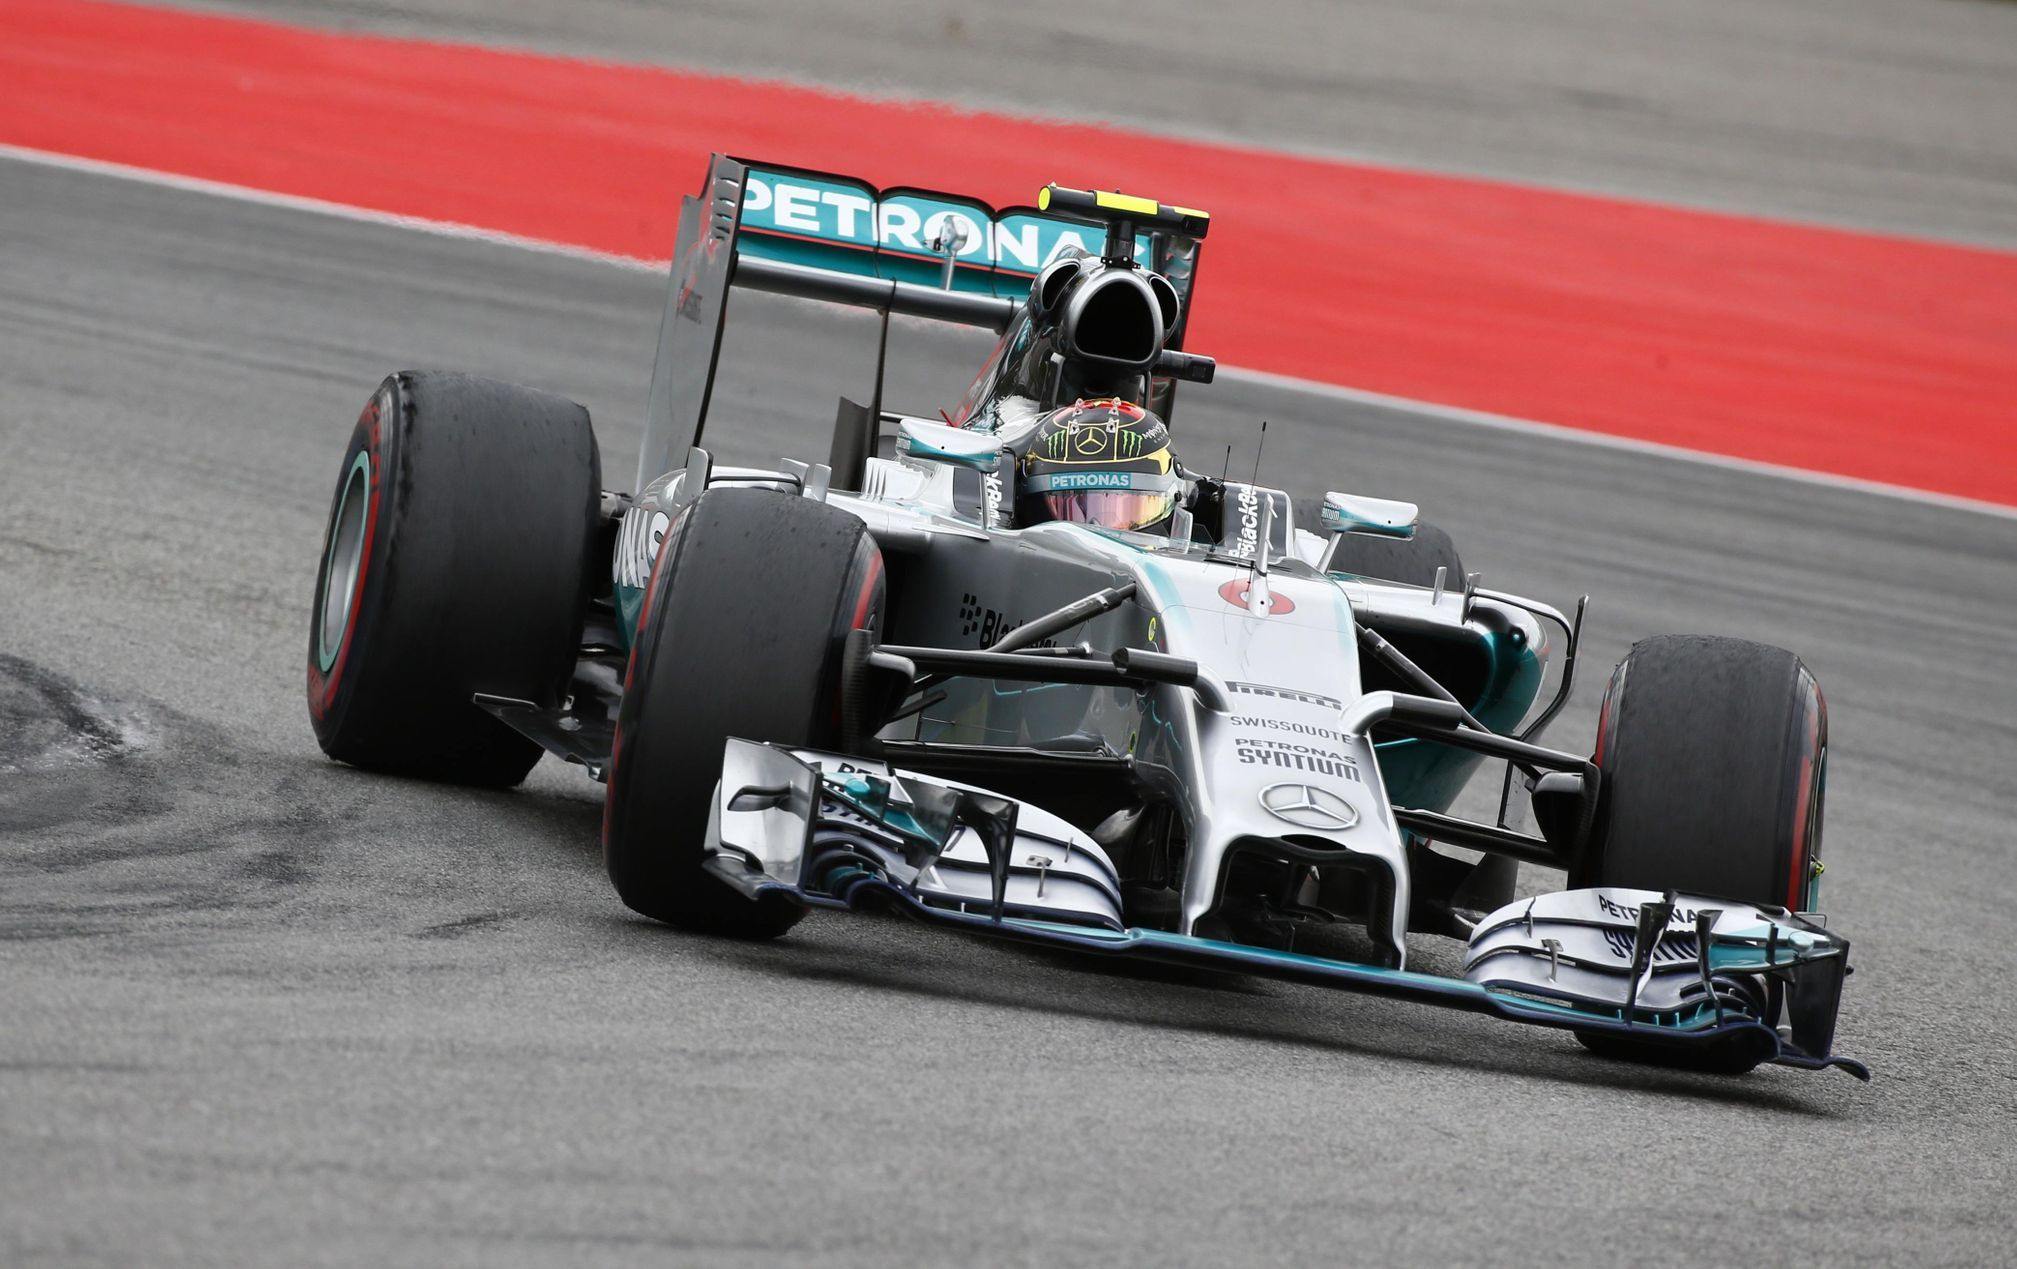 Mercedes Formula One driver Rosberg drives through corner during German F1 Grand Prix at Hockenheim